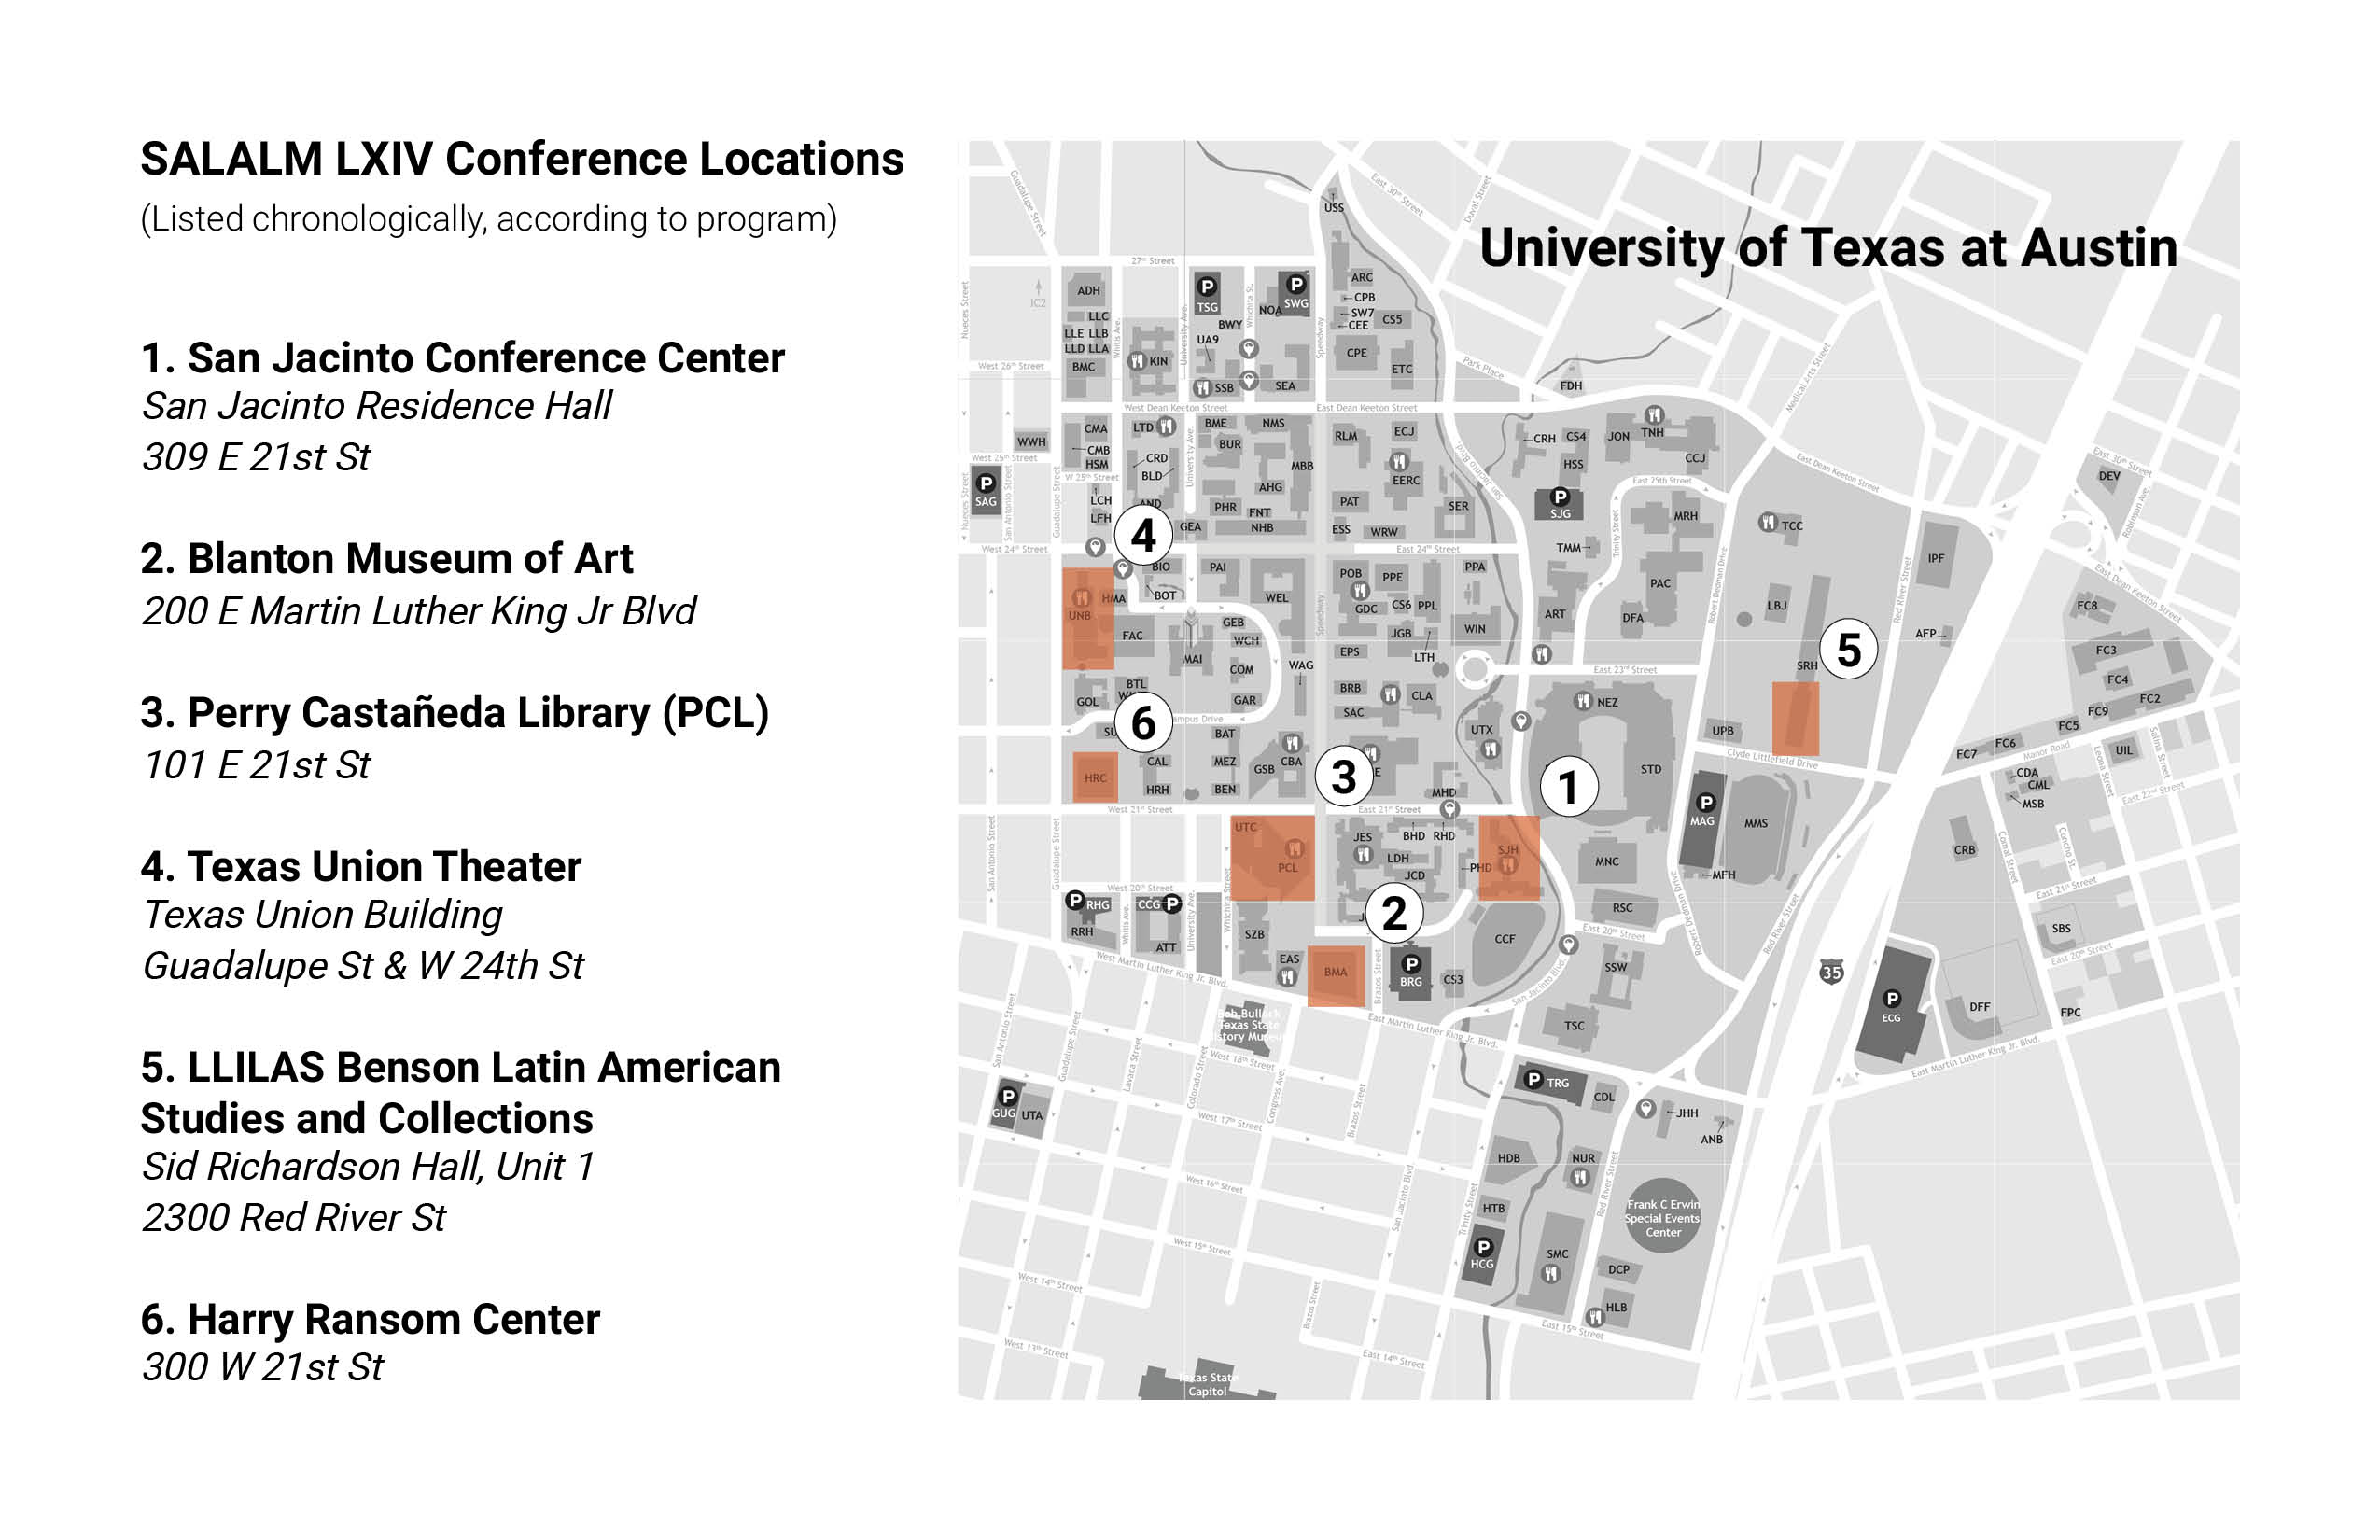 SALALM 2019 Conference Locations